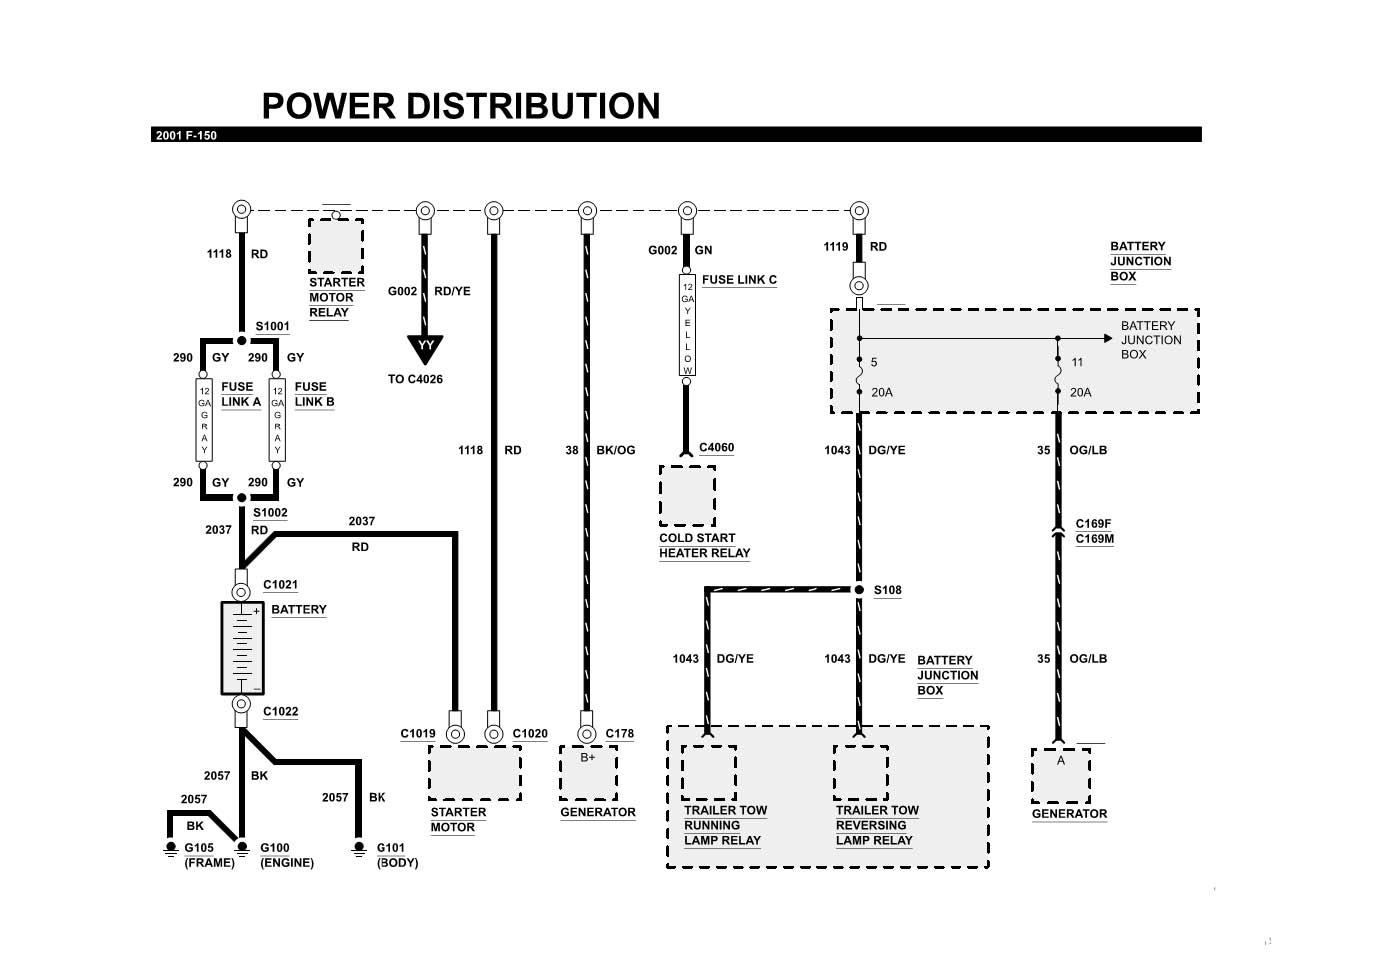 Oil Pump Wiring Diagram | Wiring Diagram Omc Fuel Pump Wiring Schematic on